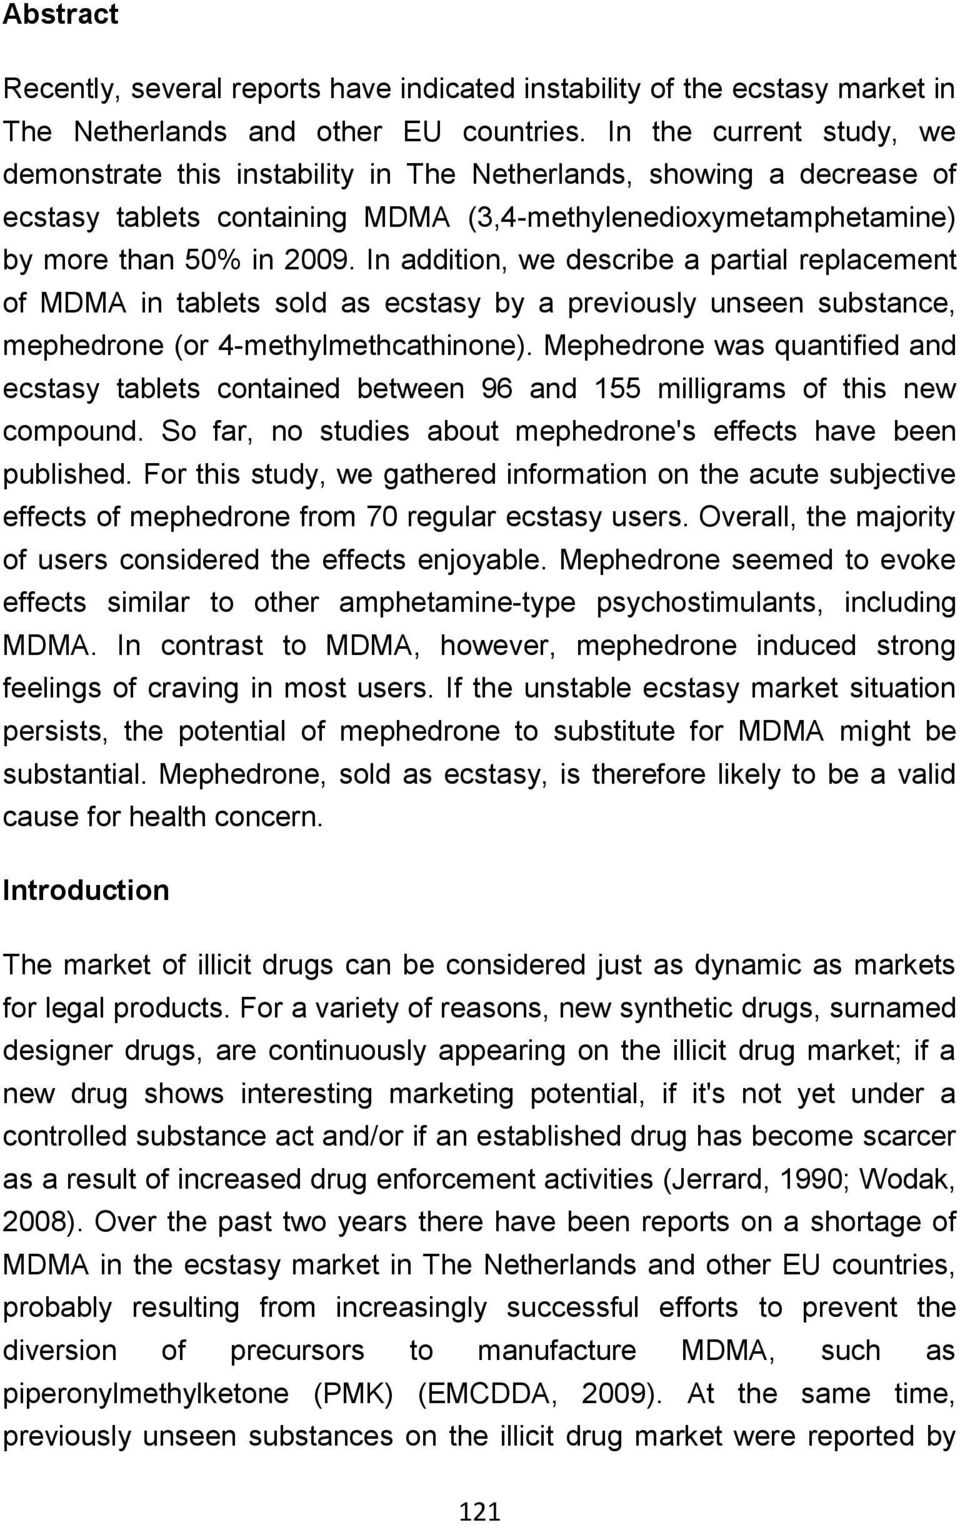 In addition, we describe a partial replacement of MDMA in tablets sold as ecstasy by a previously unseen substance, mephedrone (or 4-methylmethcathinone).